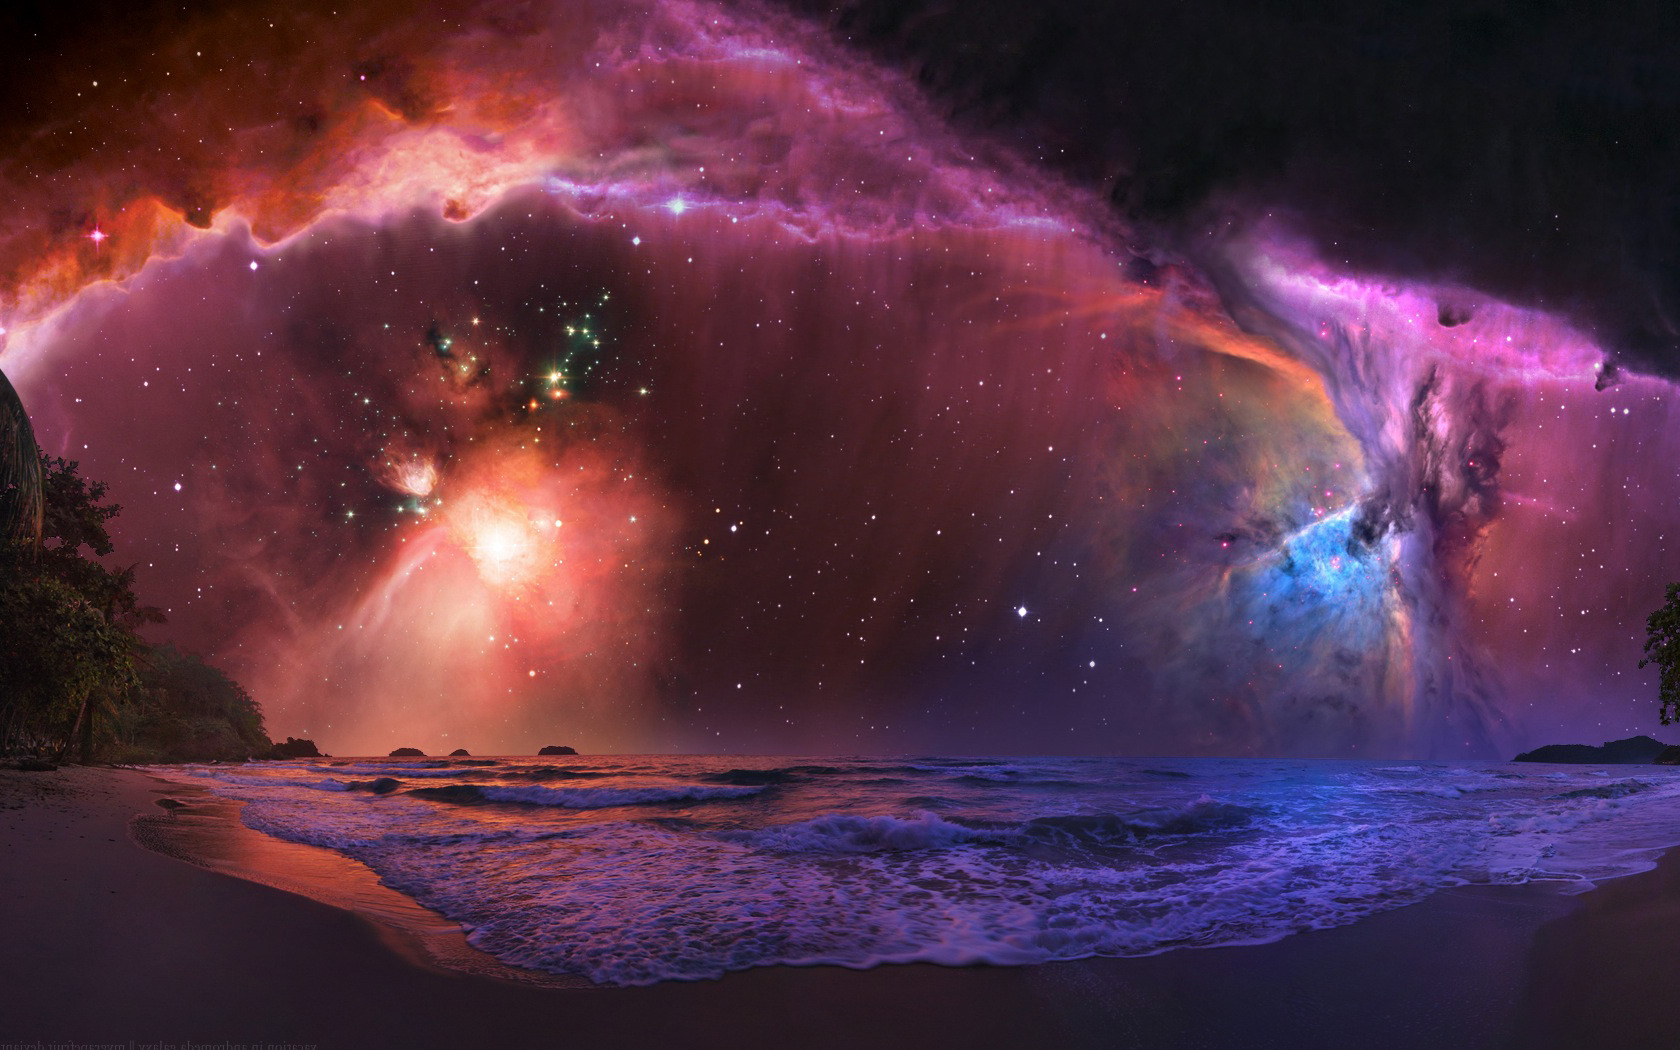 Colorful Beach Nebula Wallpapers - 1680x1050 - 458190